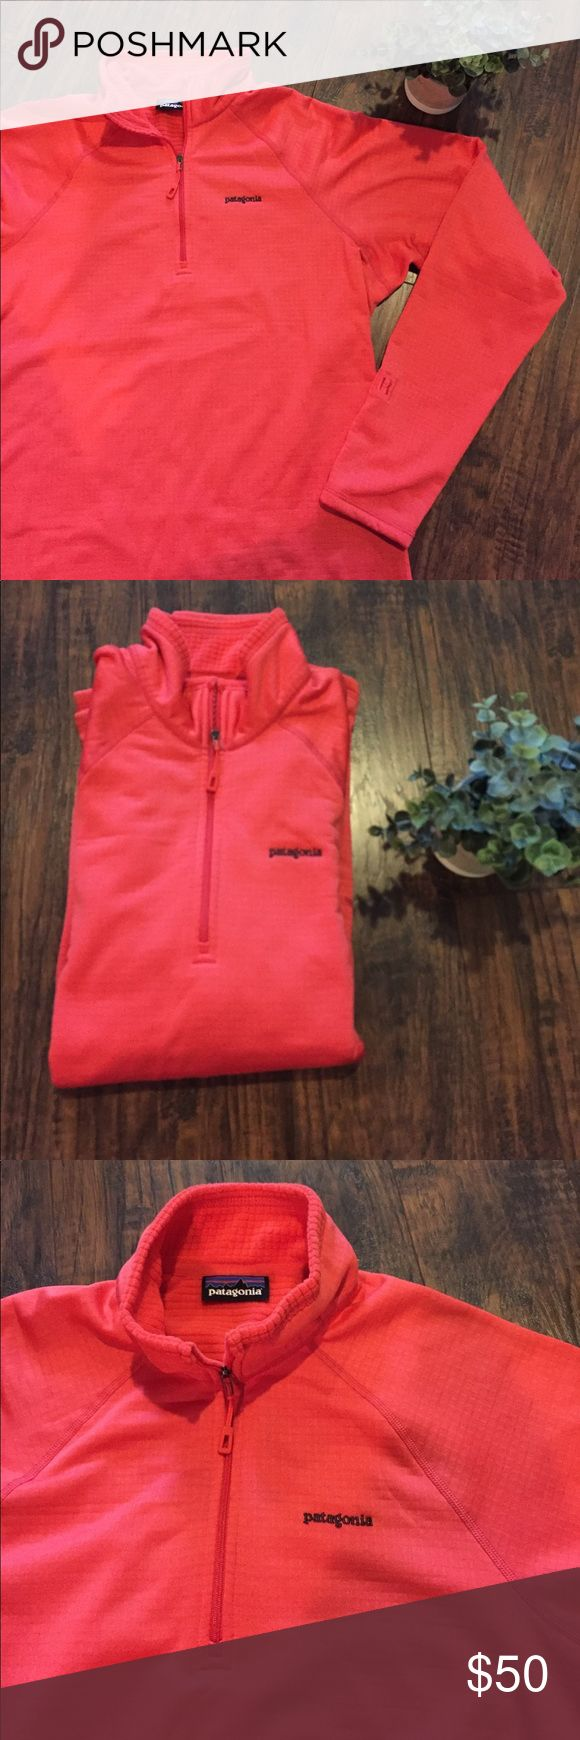 "•Patagonia• 1/4 Zip Pullover Patagonia 1/4 Zip Pullover in Excellent Used Condition. I believe this is a size large but please confirm with measurements. This is an awesome color, it's a combination of orange and red. Waffle pattern on the inside for warmth. Polartec Power Dry. ""R"" printed on one sleeve. Armpit to Armpit Approximately 20.5"", Length Approximately 27"", Arms Approximately 27.5"" Patagonia Tops Sweatshirts & Hoodies"